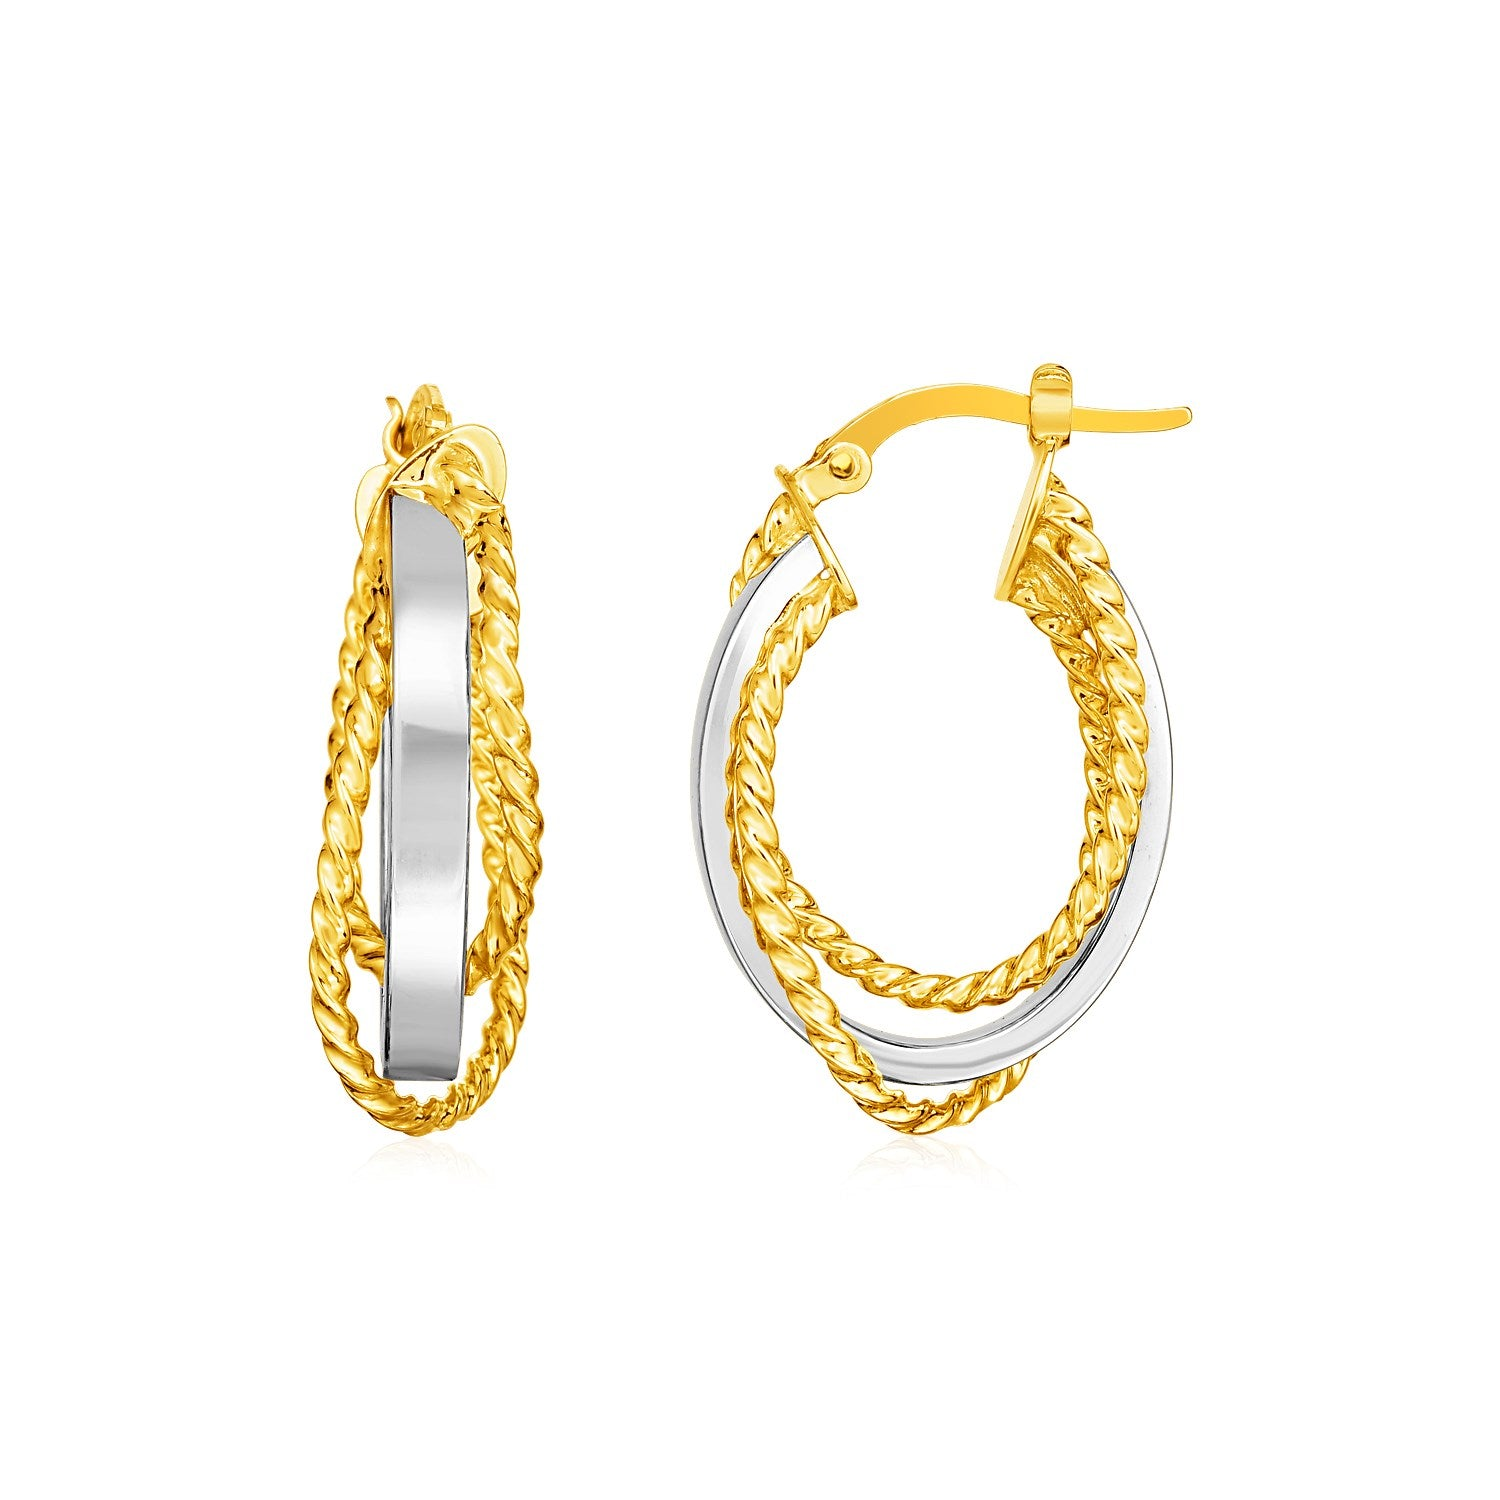 14k Two Tone Gold Three Part Shiny and Textured Oval Hoop Earrings